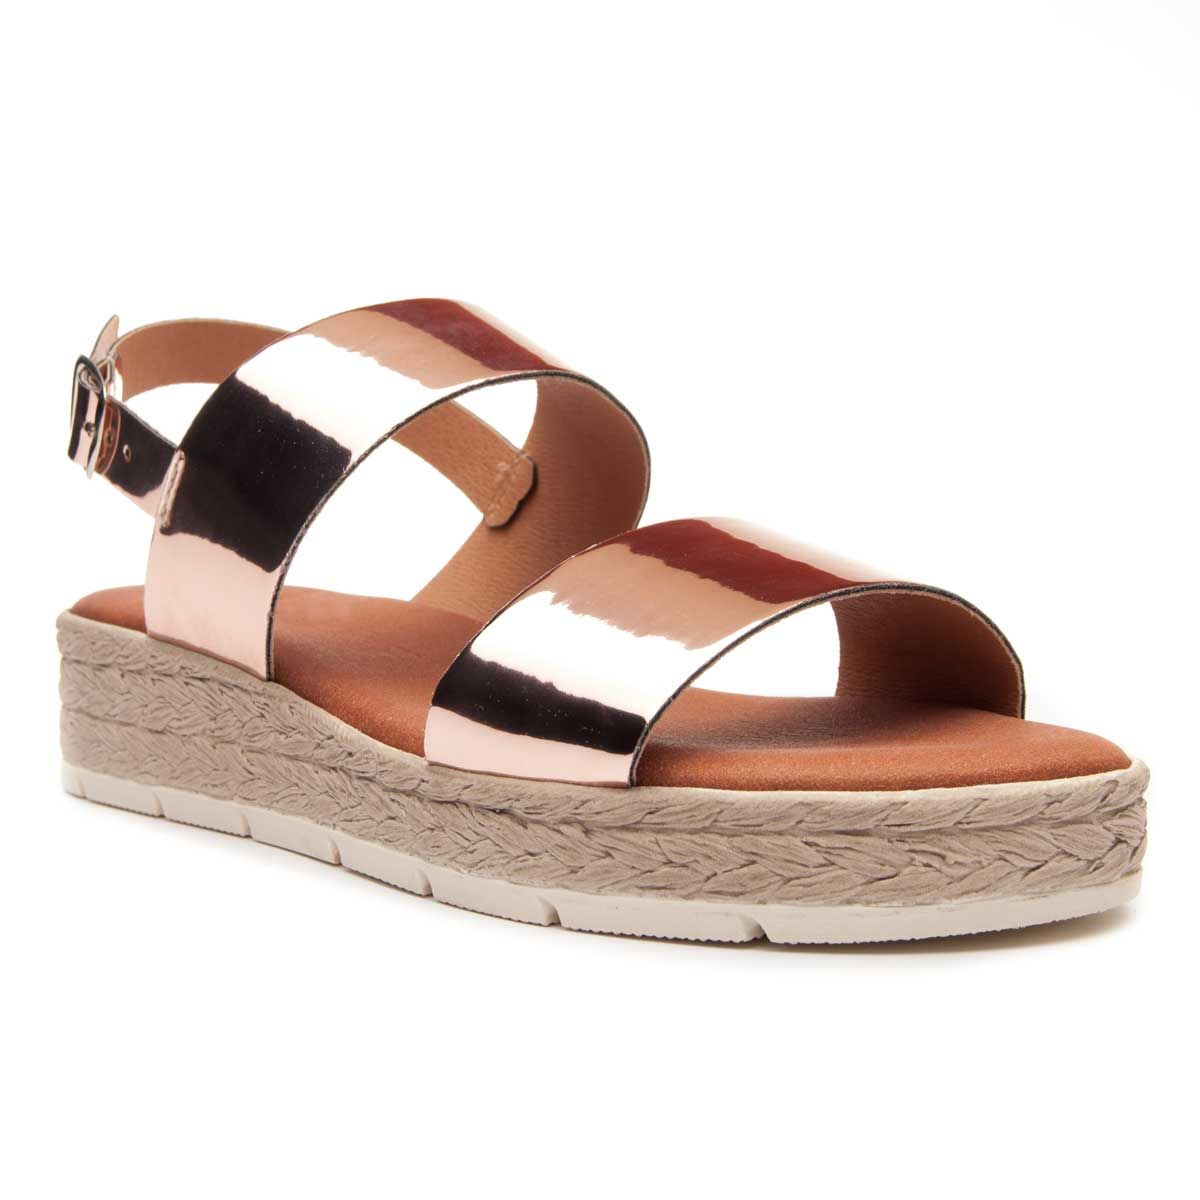 Leindia Double Strap Flat Sandal in Nude